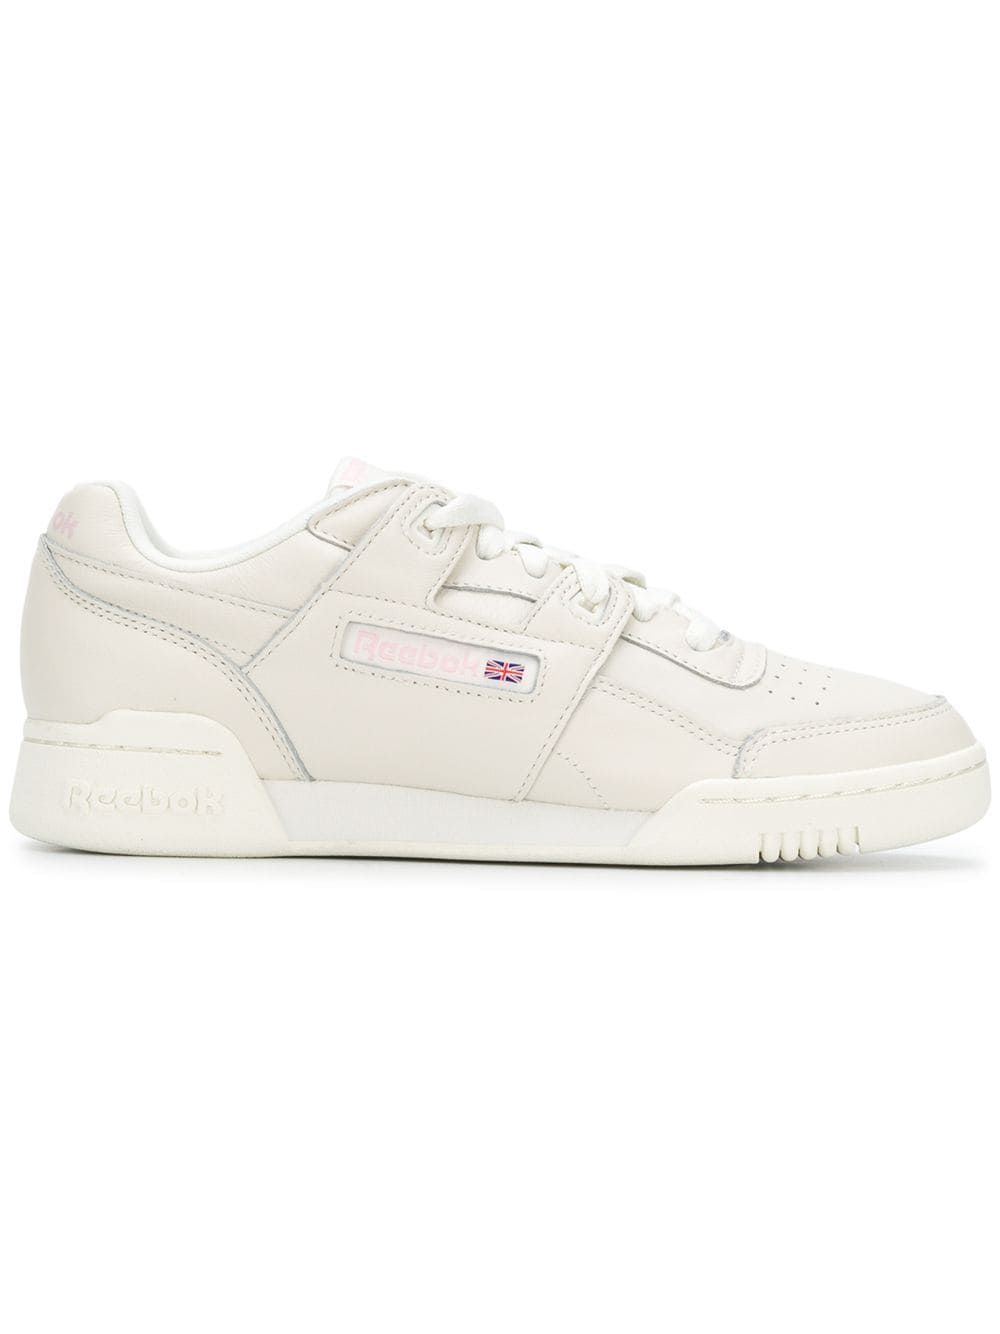 4804b610e Reebok Workout Plus Vintage Sneakers in 2019 | Products | Vintage ...